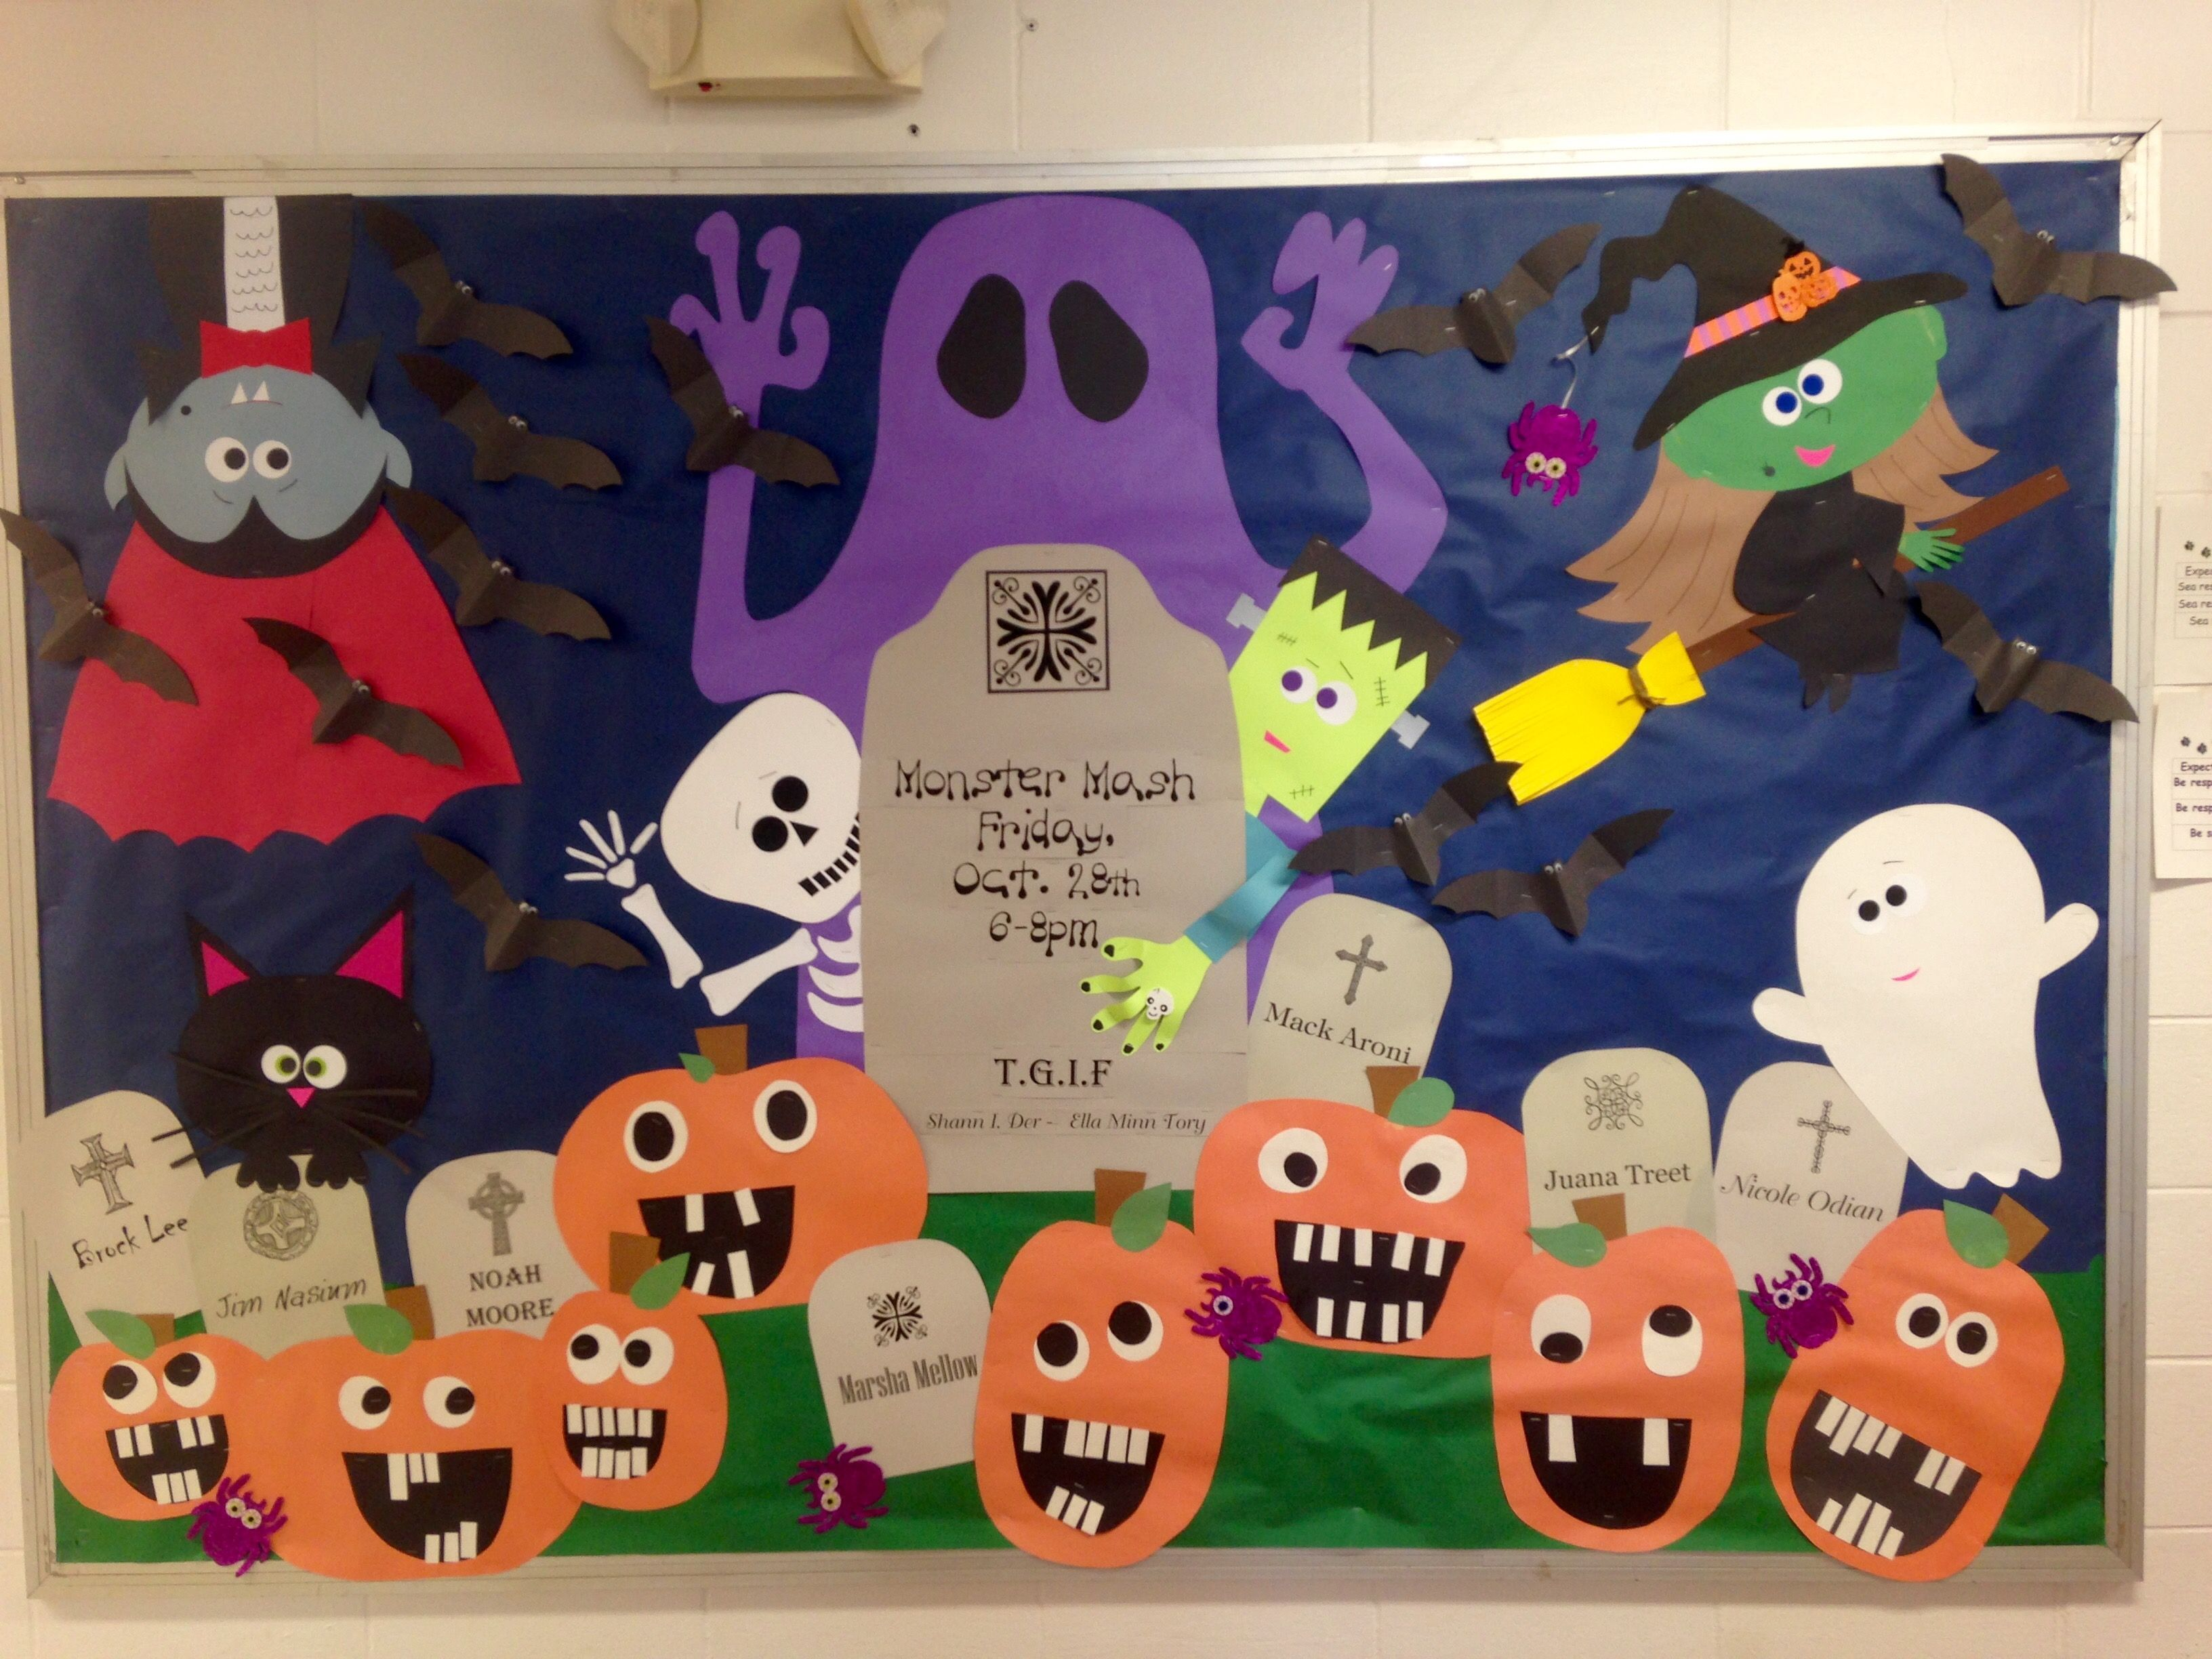 Halloween Bulletin Board 2016 Monster Mash #halloweenbulletinboards Halloween Bulletin Board 2016 Monster Mash #halloweenbulletinboards Halloween Bulletin Board 2016 Monster Mash #halloweenbulletinboards Halloween Bulletin Board 2016 Monster Mash #halloweenclassroomdoor